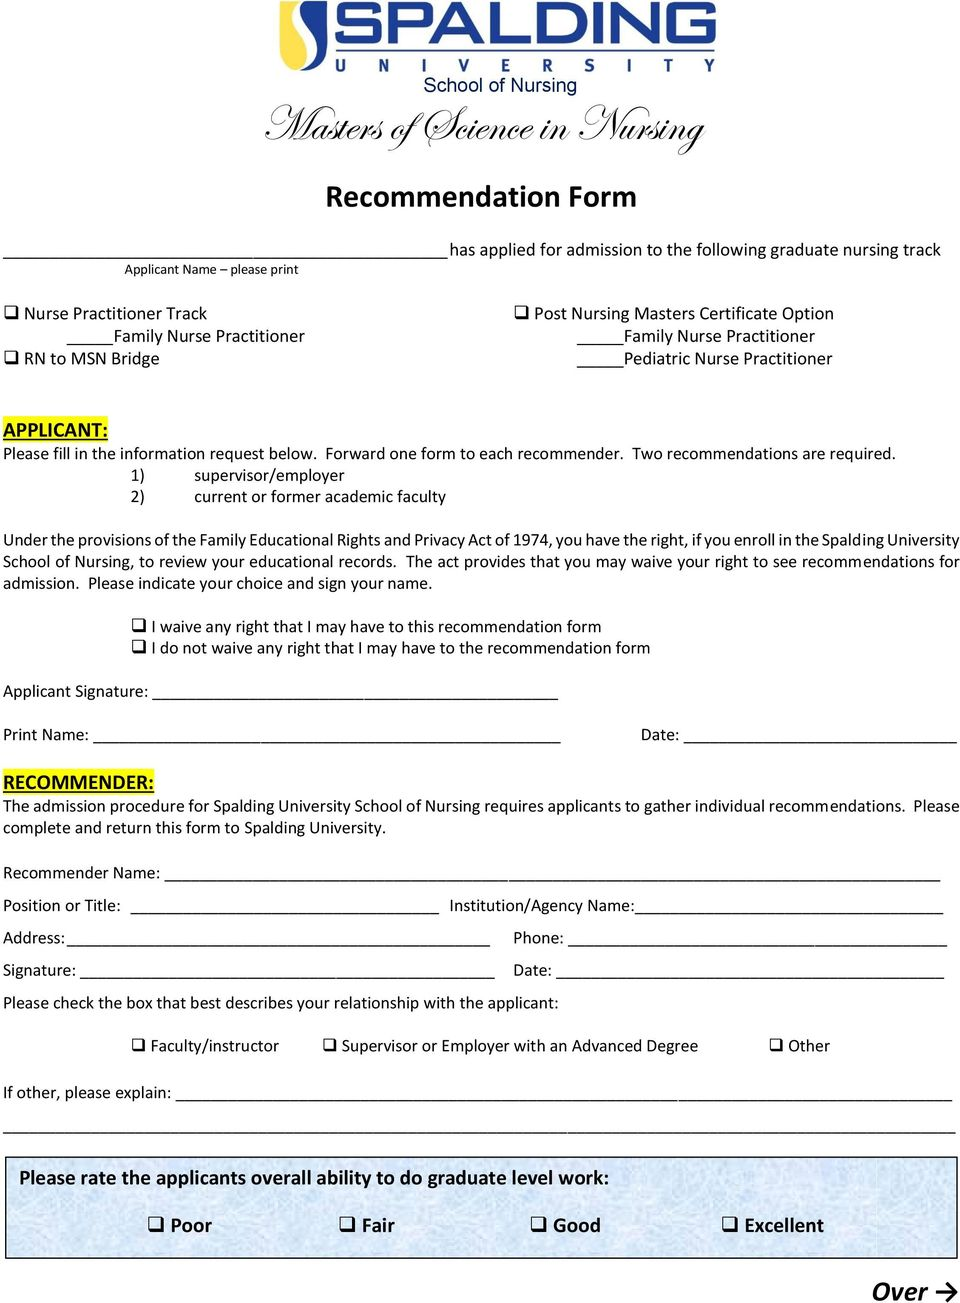 Forward one form to each recommender. Two recommendations are required.